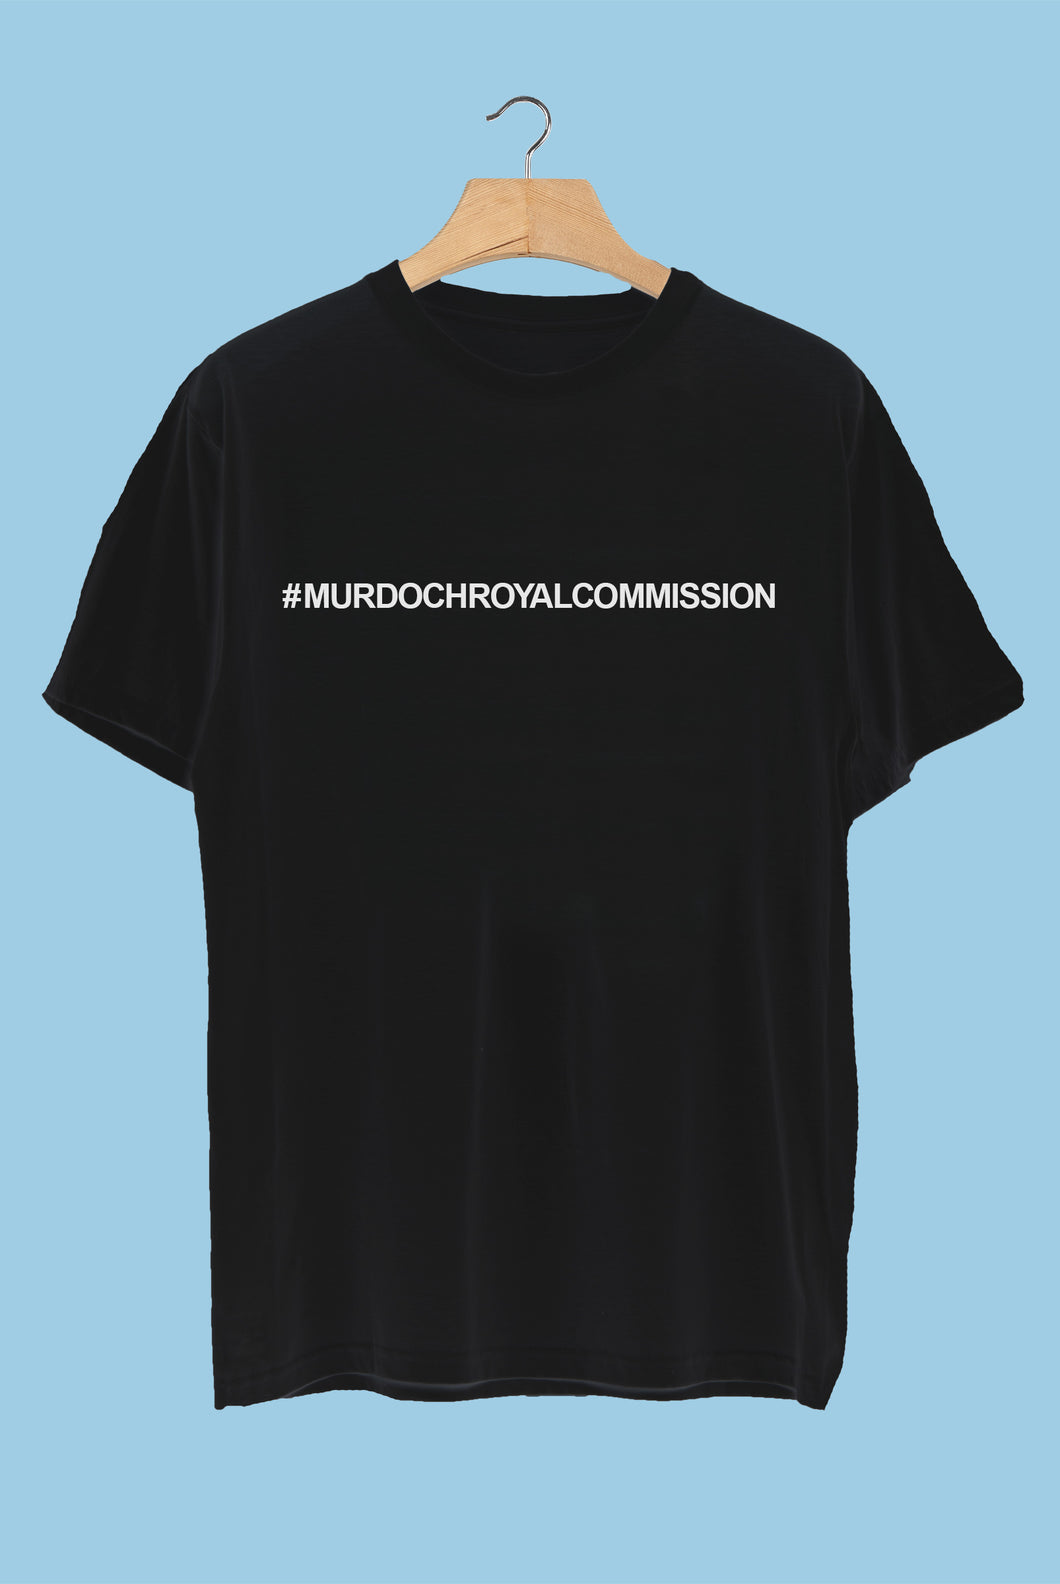 #MurdochRoyalCommission T-Shirt - White on Black